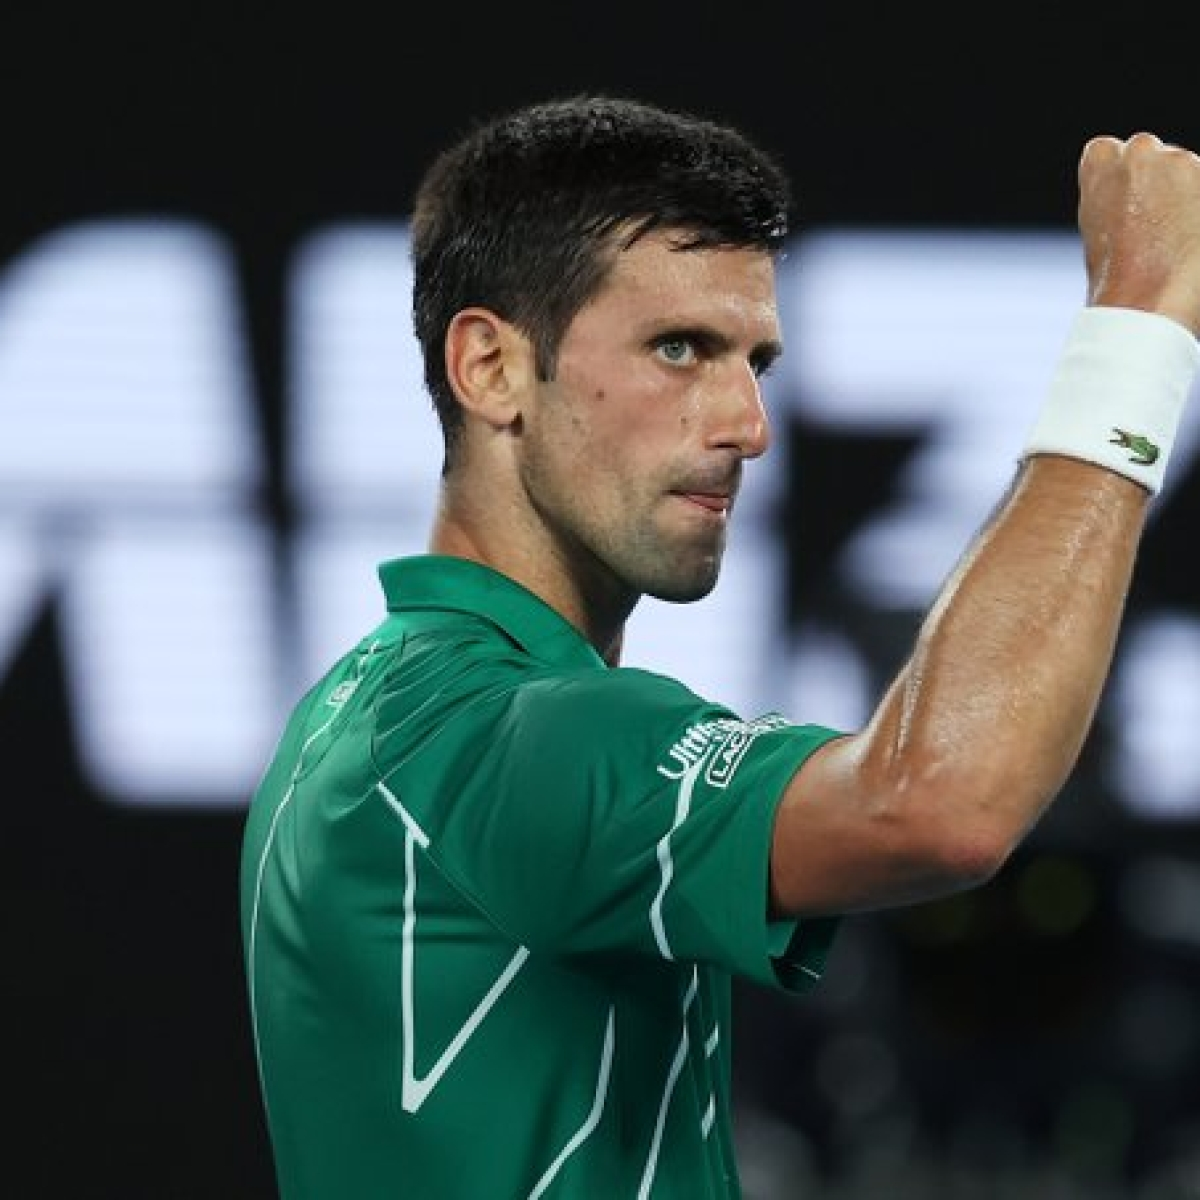 Will approach Olympics as any other tournament, says Novak Djokovic